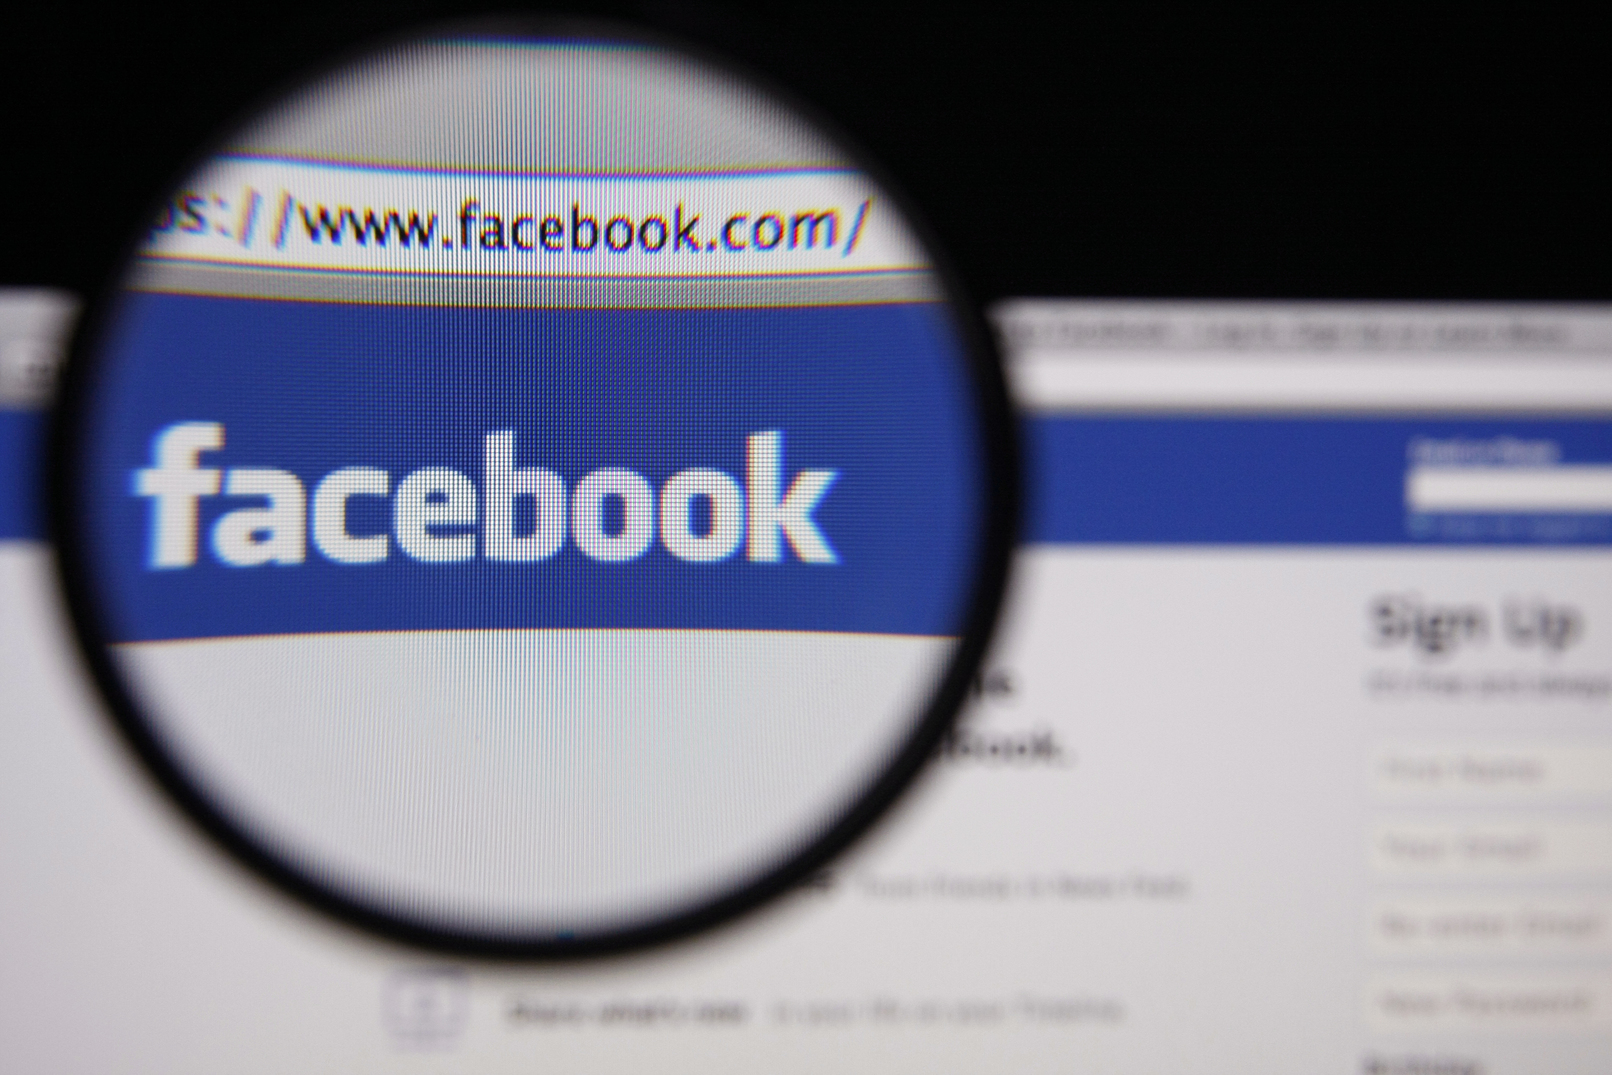 New York's Highest Court Holds Some, But Not All, Facebook Photos Are Discoverable